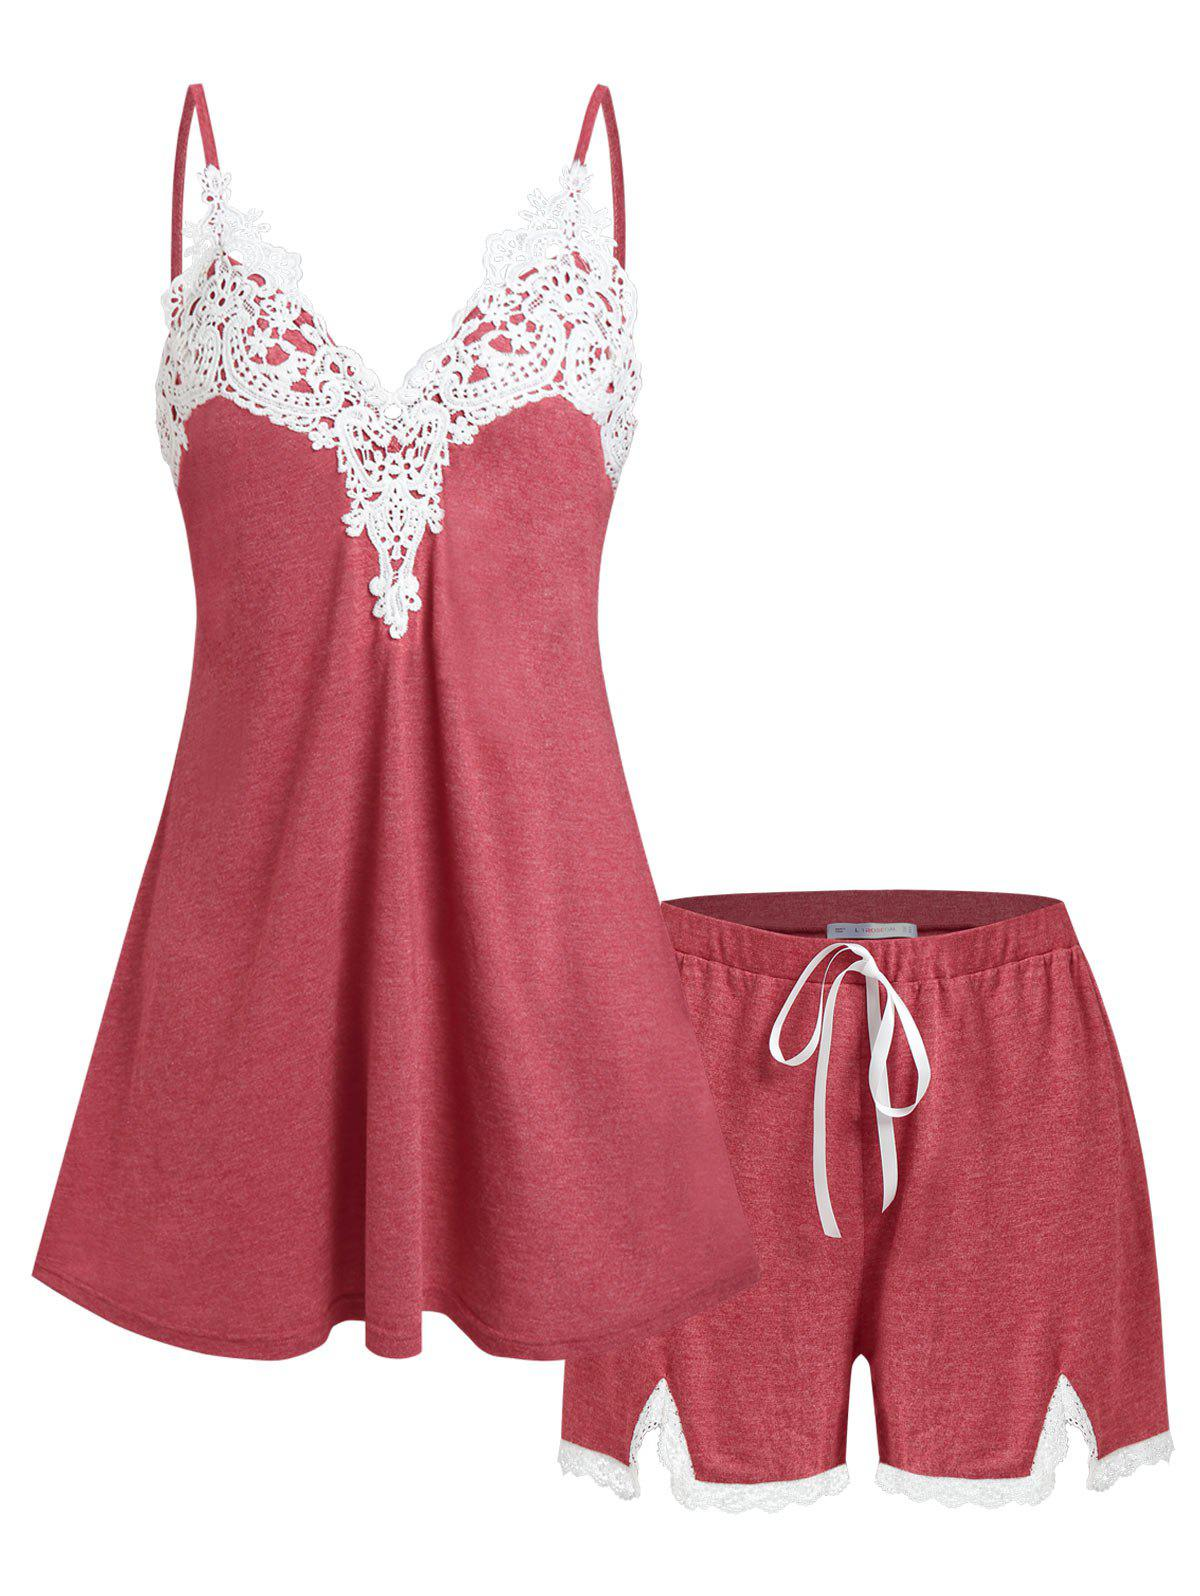 Plus Size Applique Panel Pajama Cami Top and Shorts Set - DEEP RED 5X